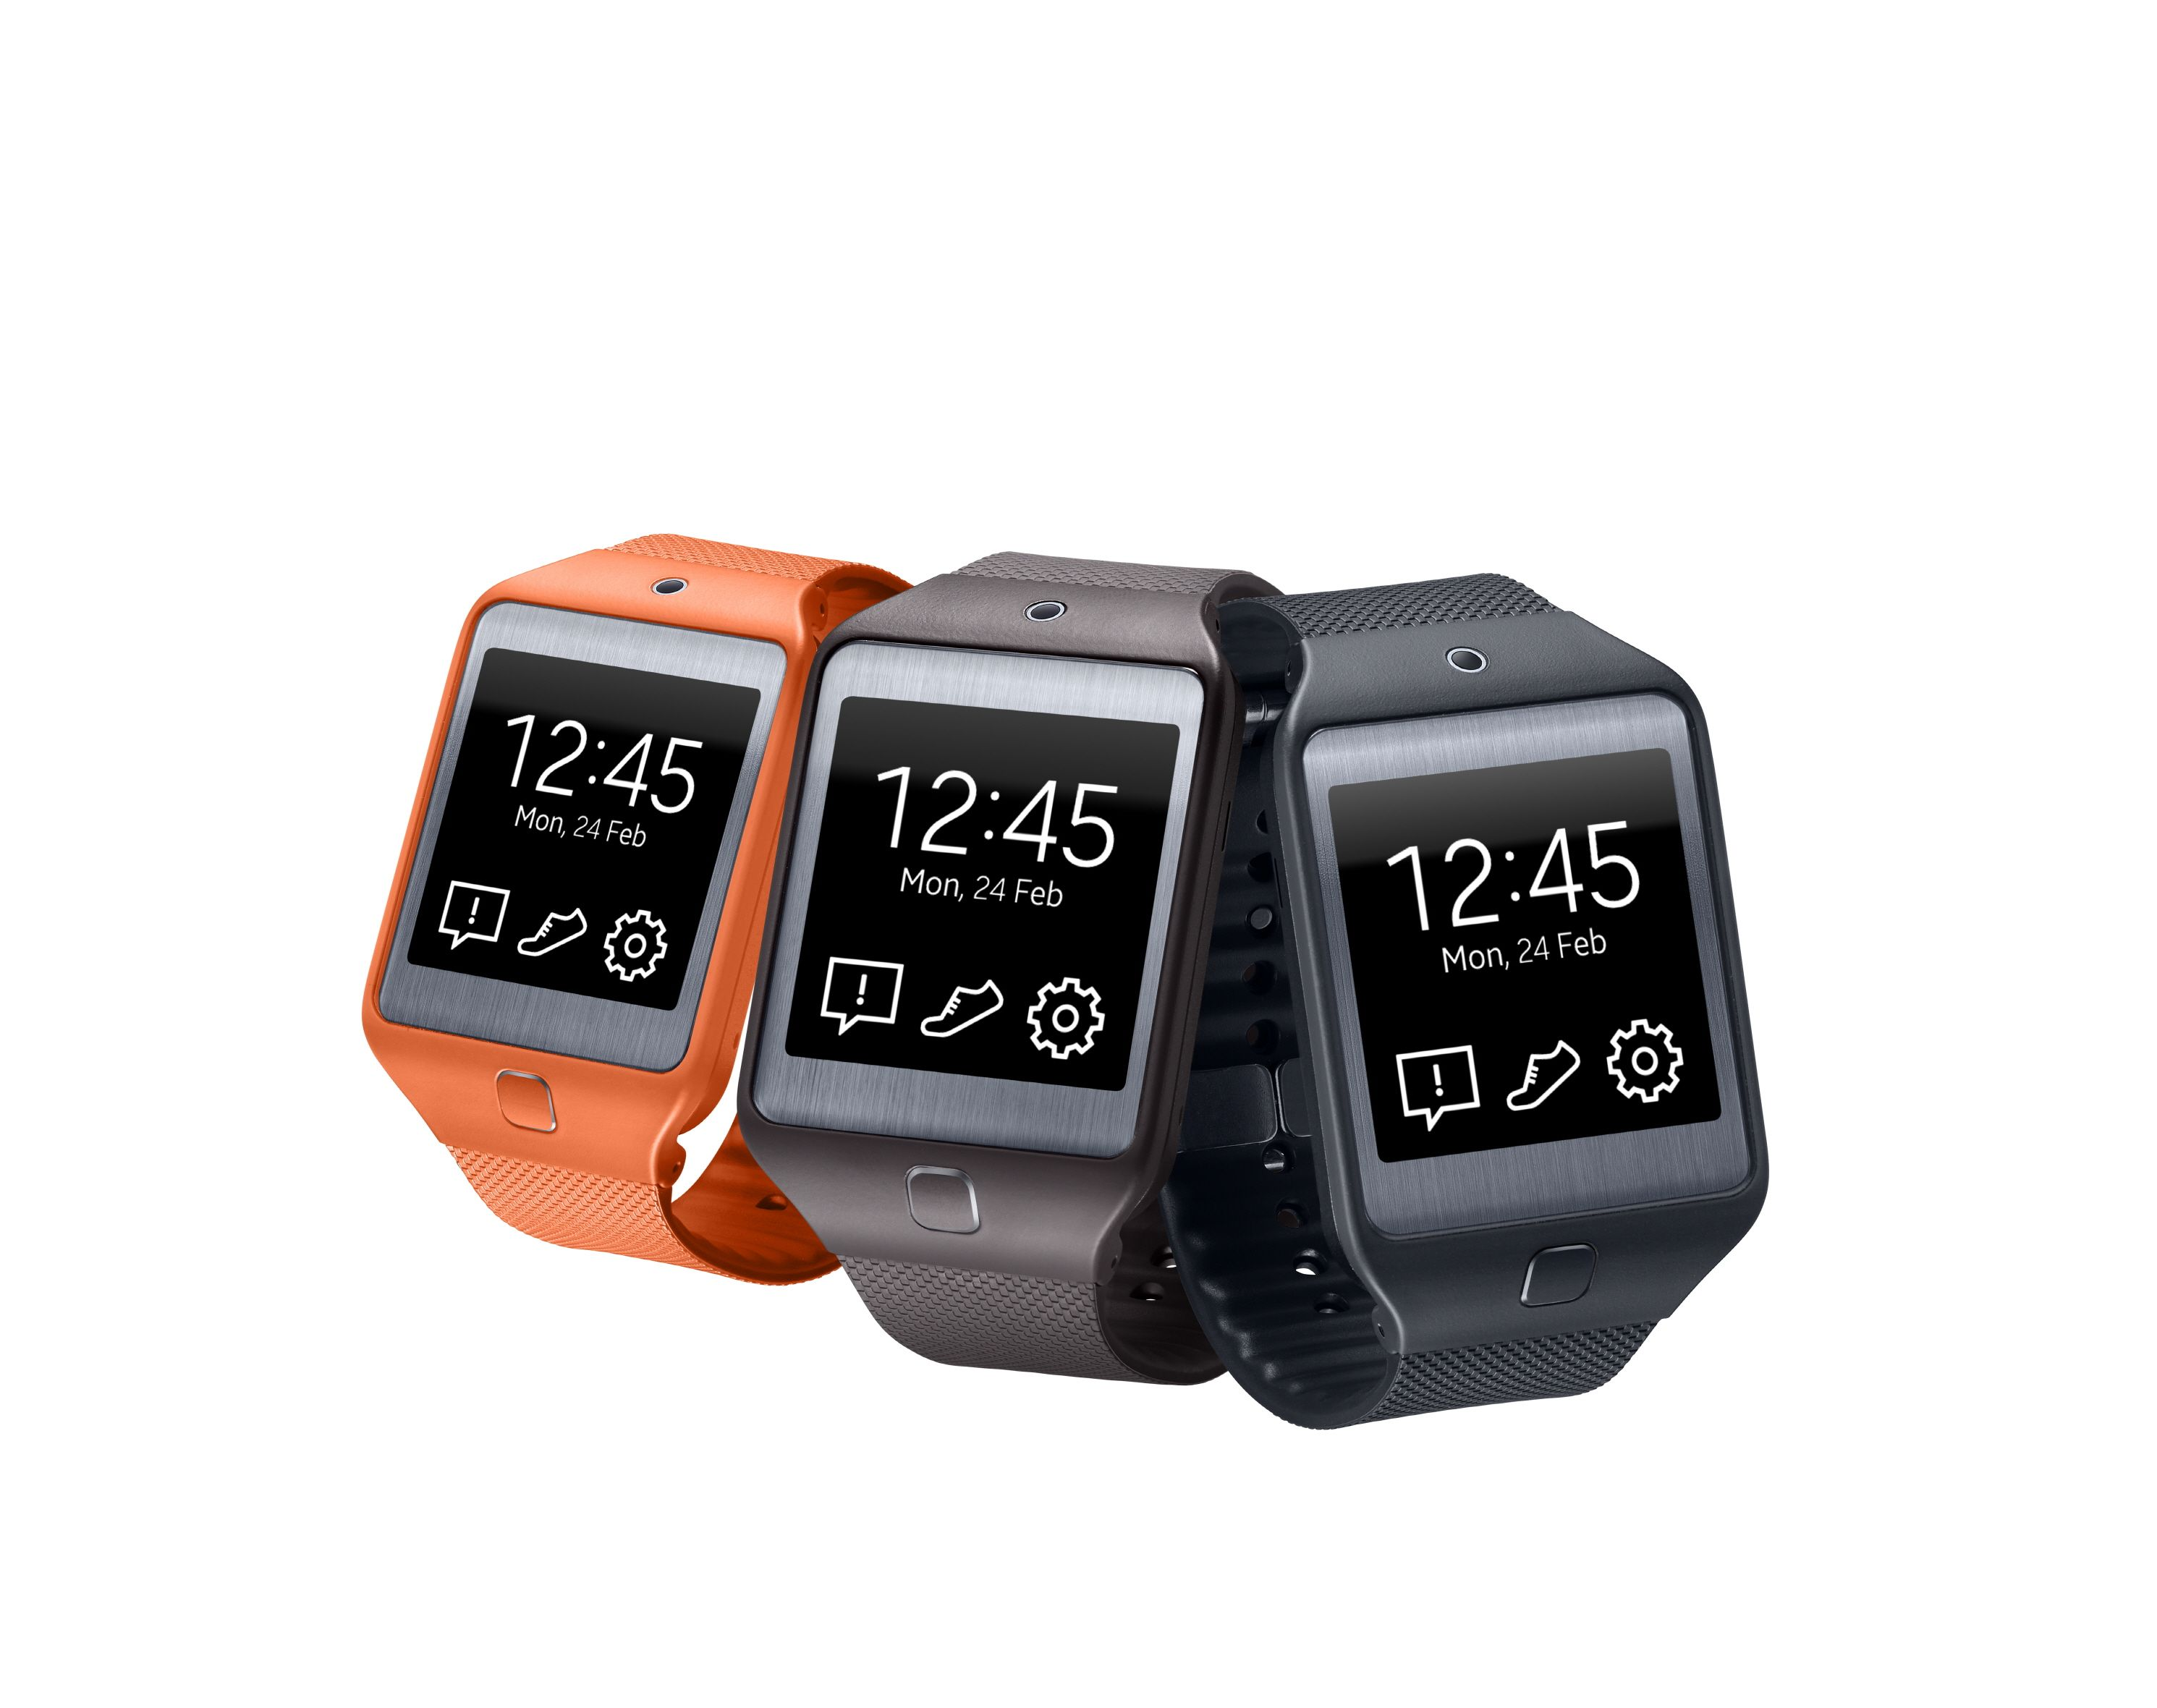 7ac800ff4 Samsung  developing Gear 2 smartwatch with phone call functionality